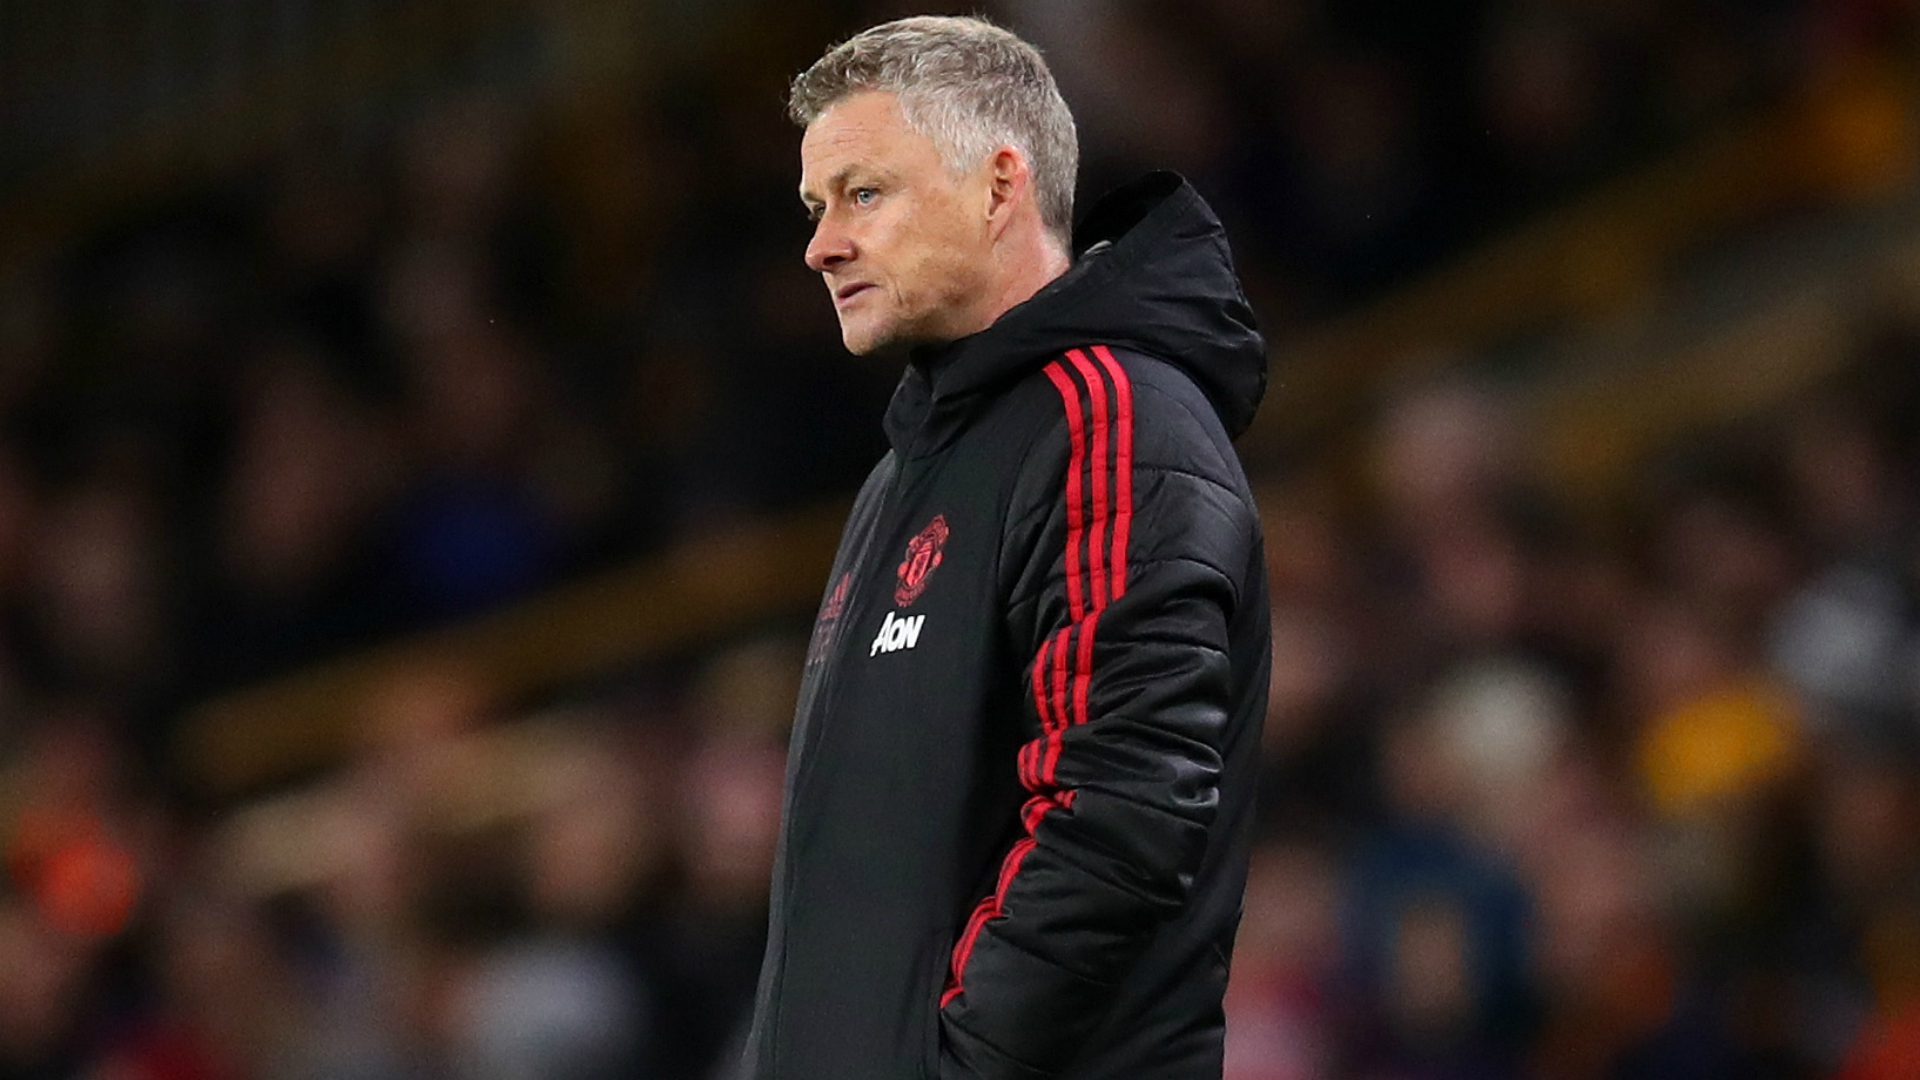 Solskjaer sorry after 'unworthy' Man United performance, Latest Football News